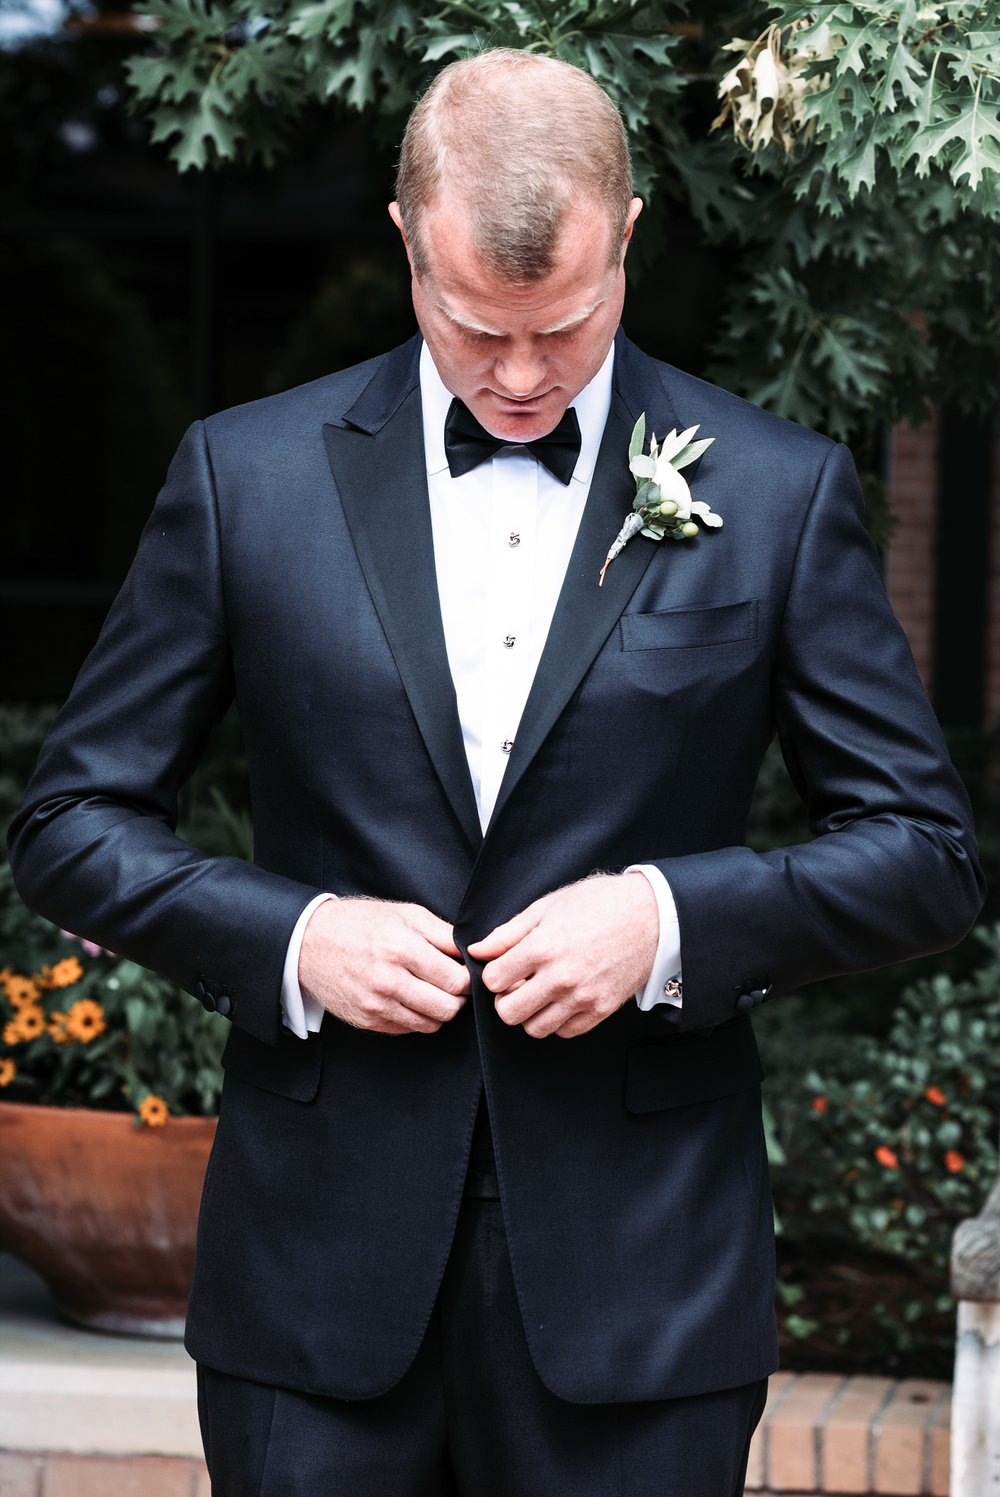 Wedding portrait groom suit boutonnière bow tie